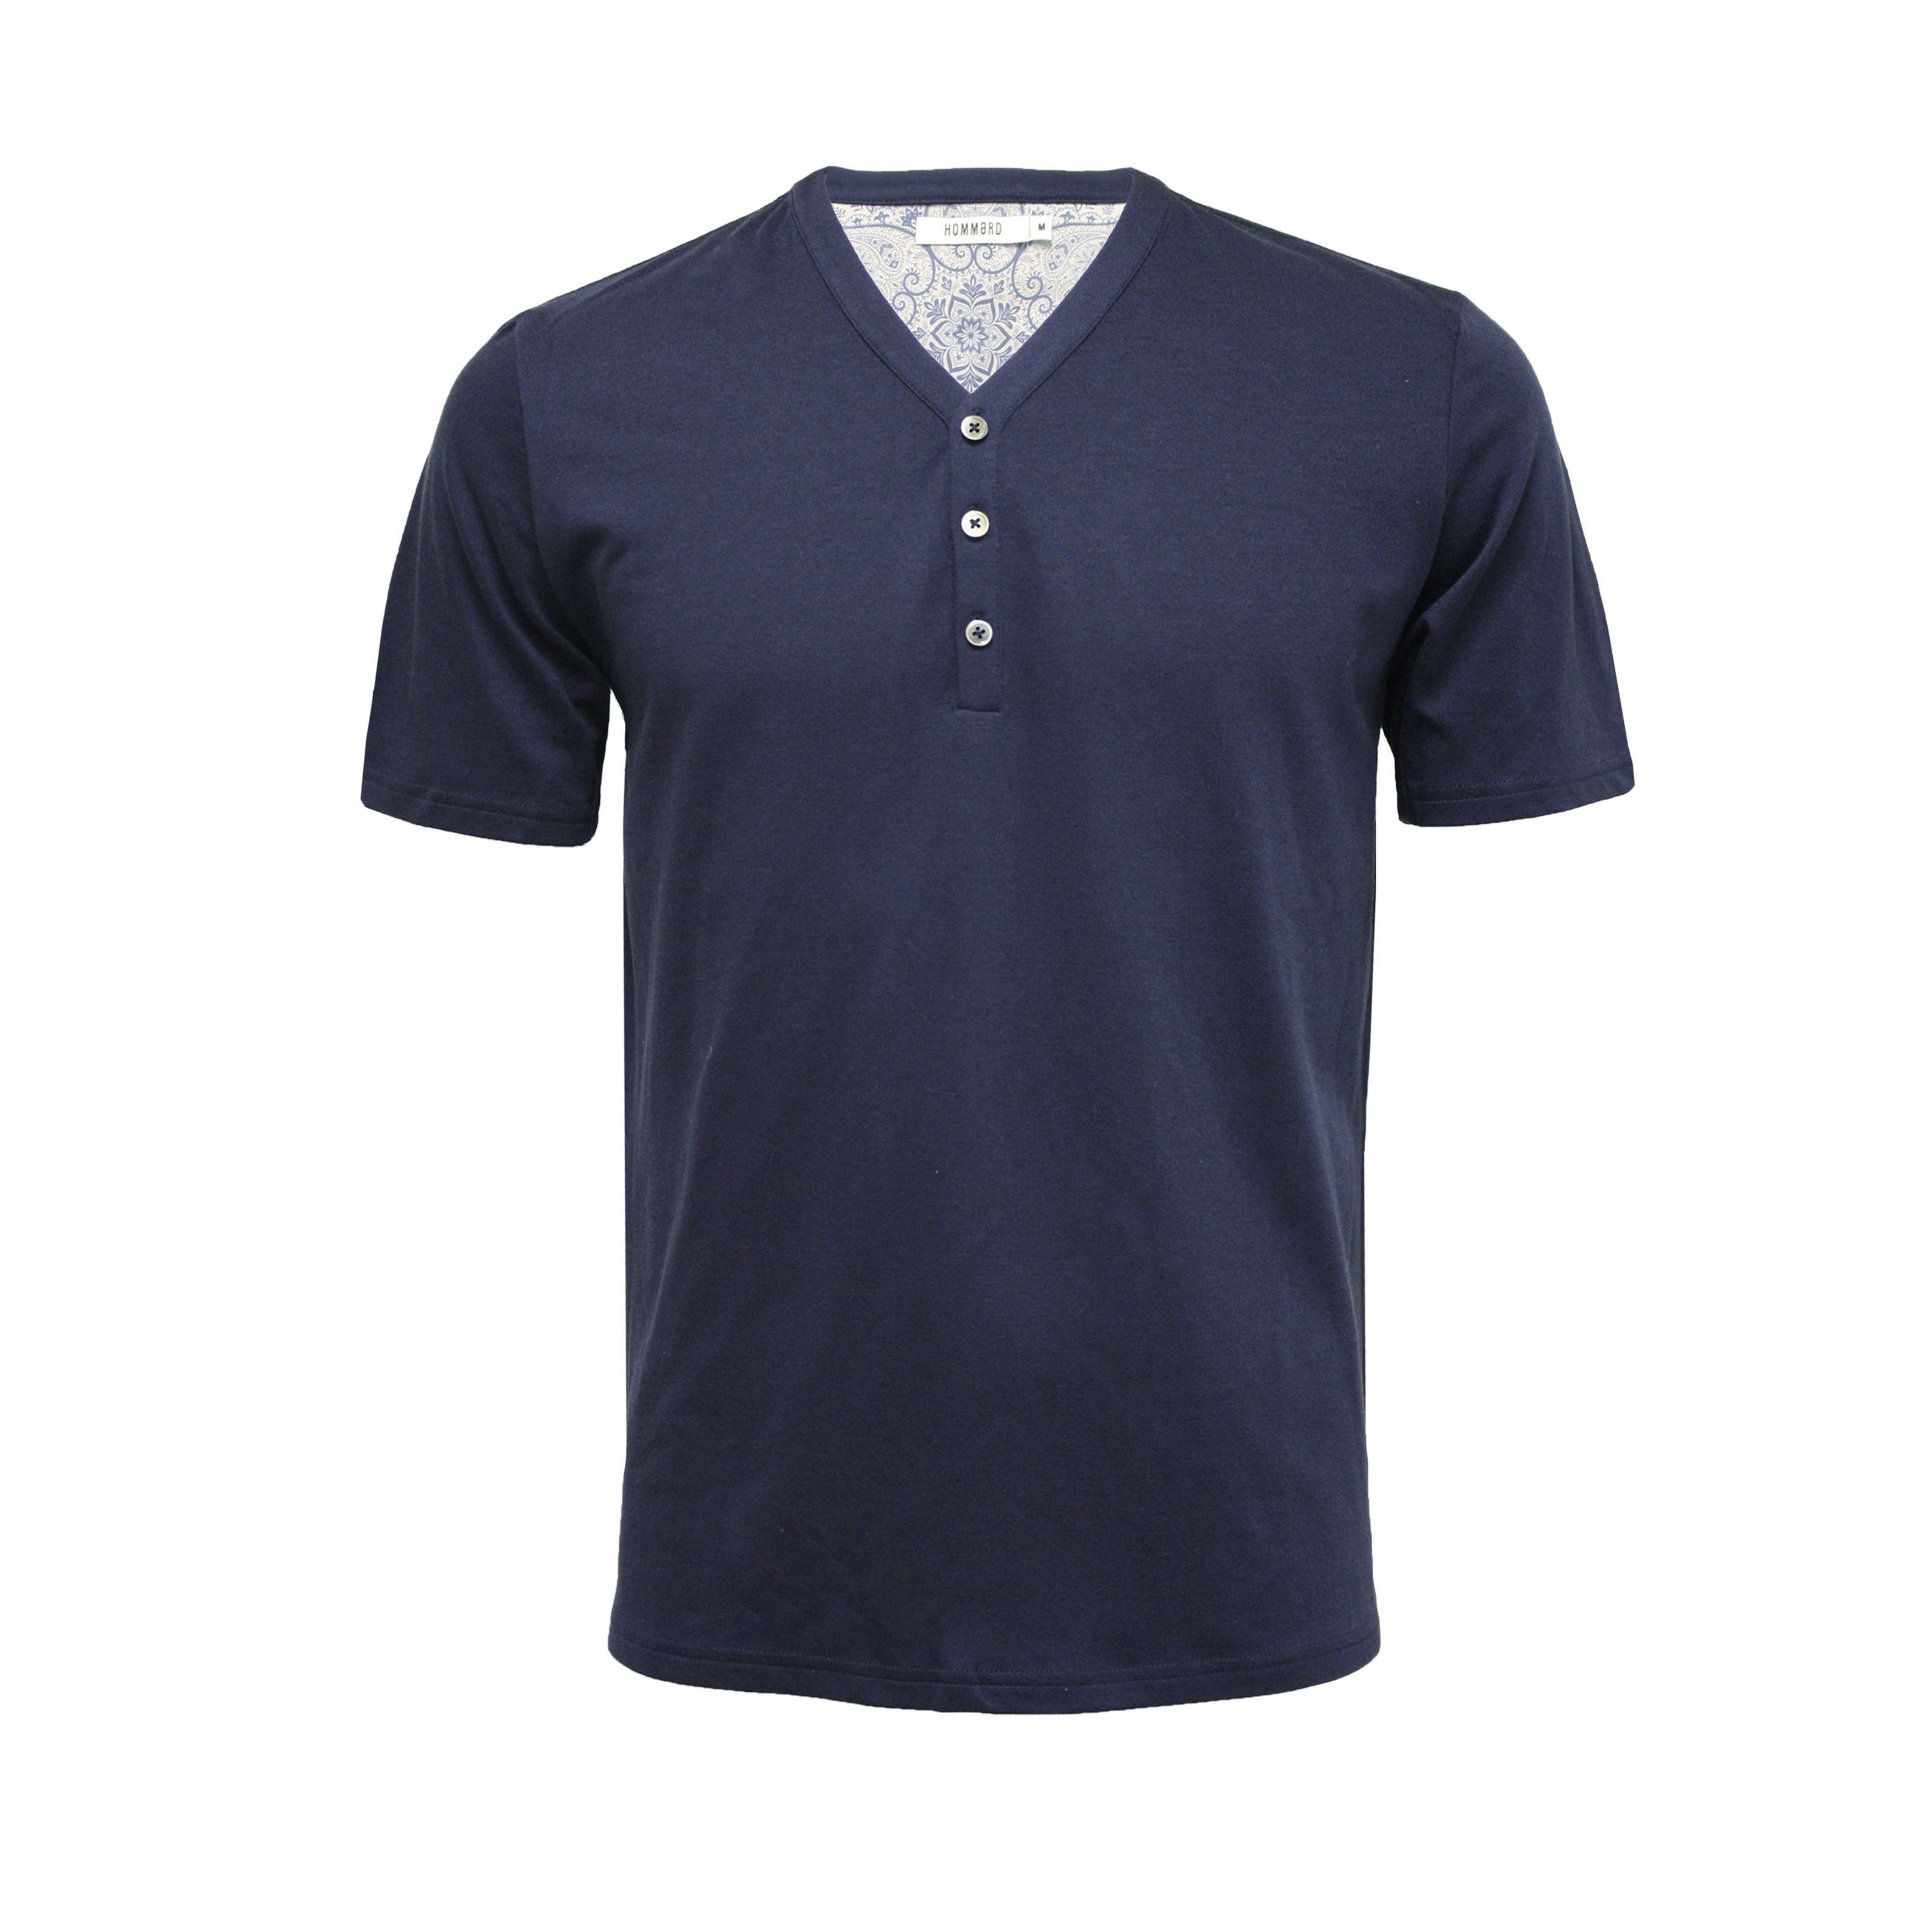 Men s silk cotton t shirt short sleeves with 3 buttons for Cotton silk tee shirts